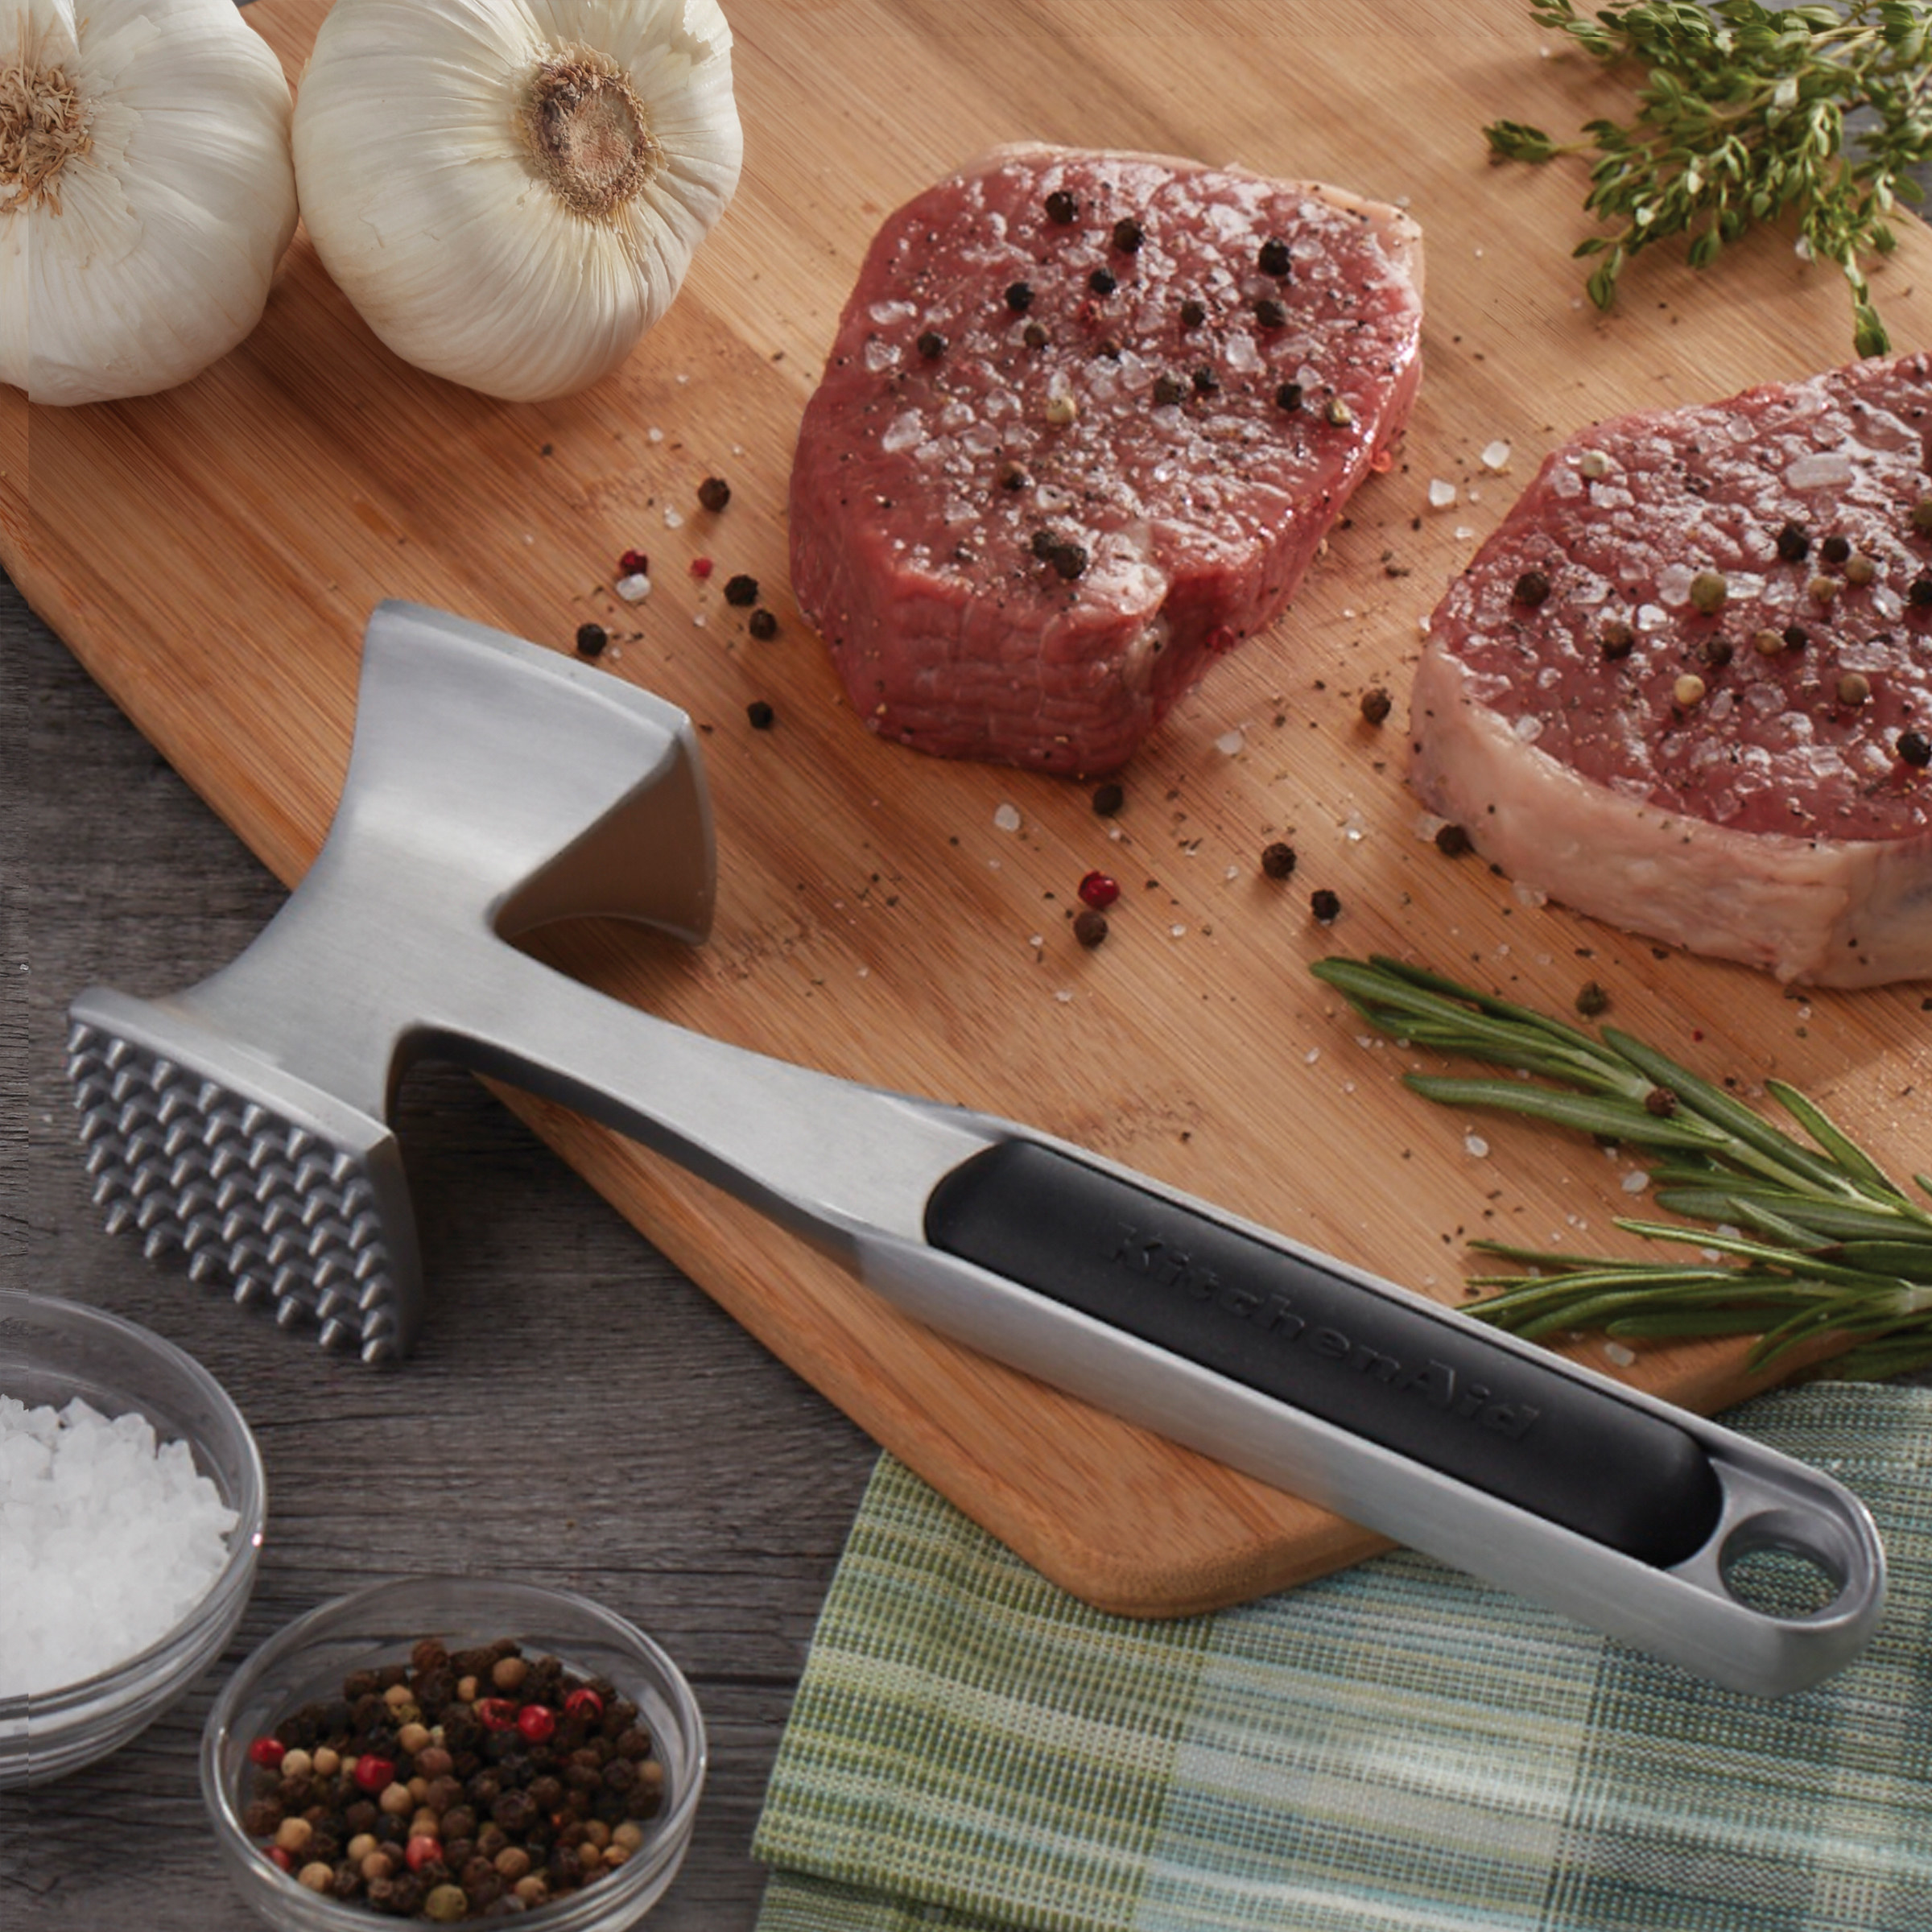 The black and silver meat tenderizer